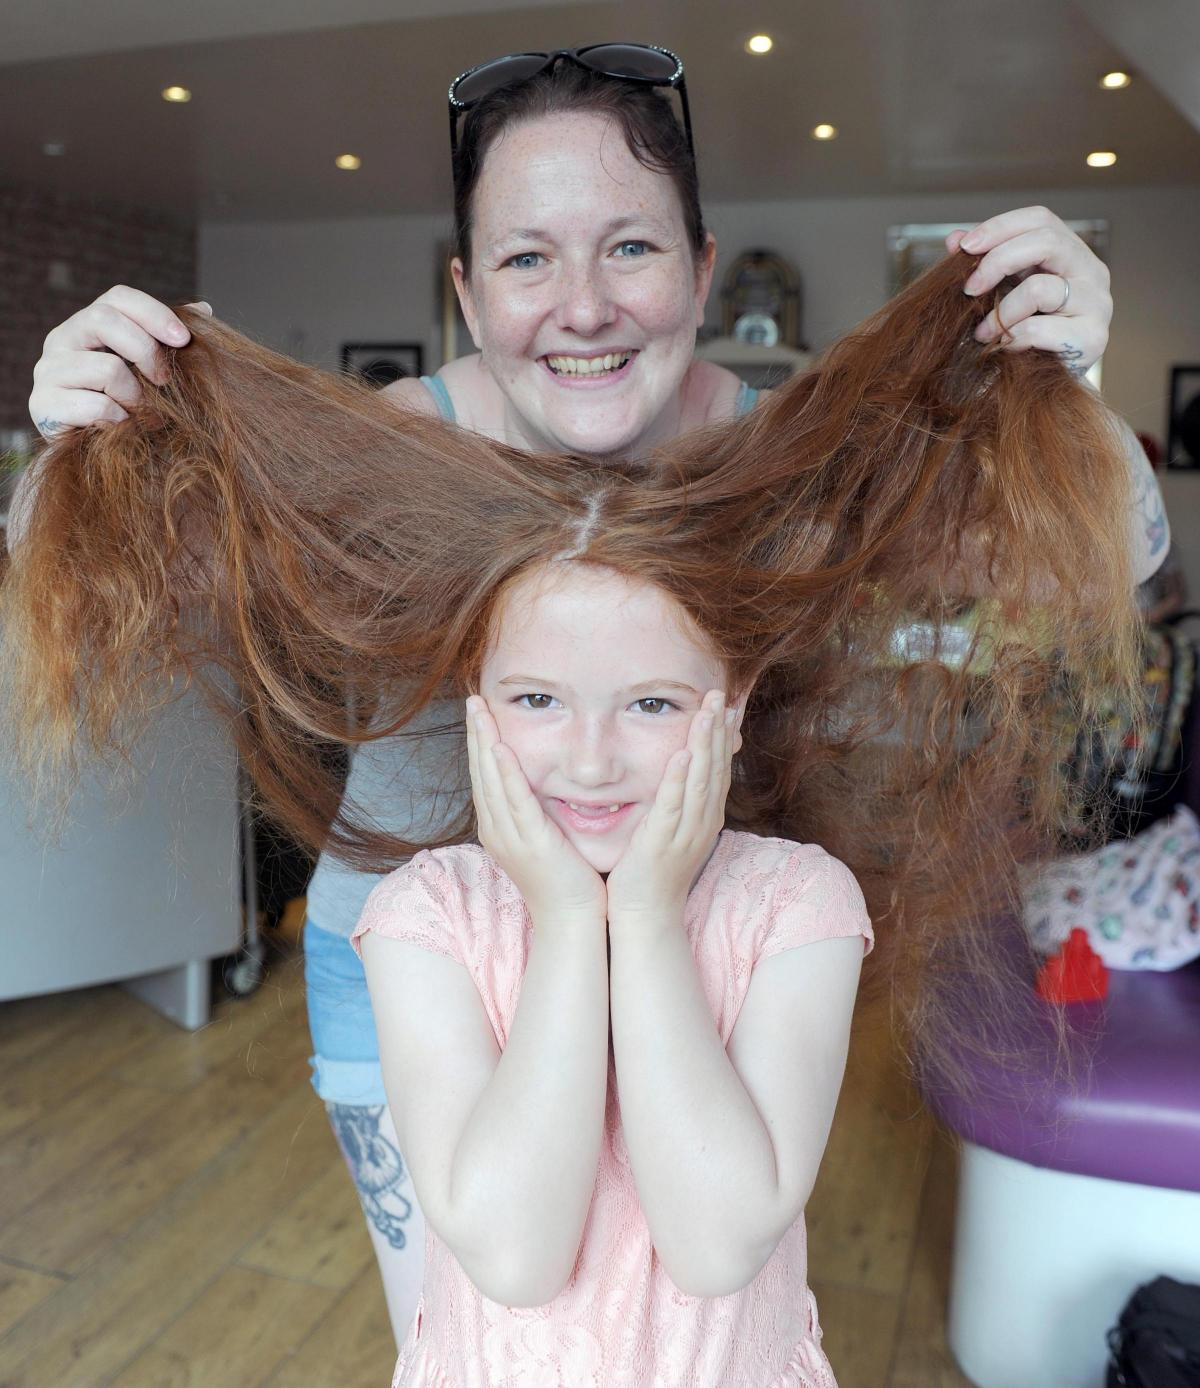 Six Year Old Newport Schoolgirl Undergoes First Haircut For Little